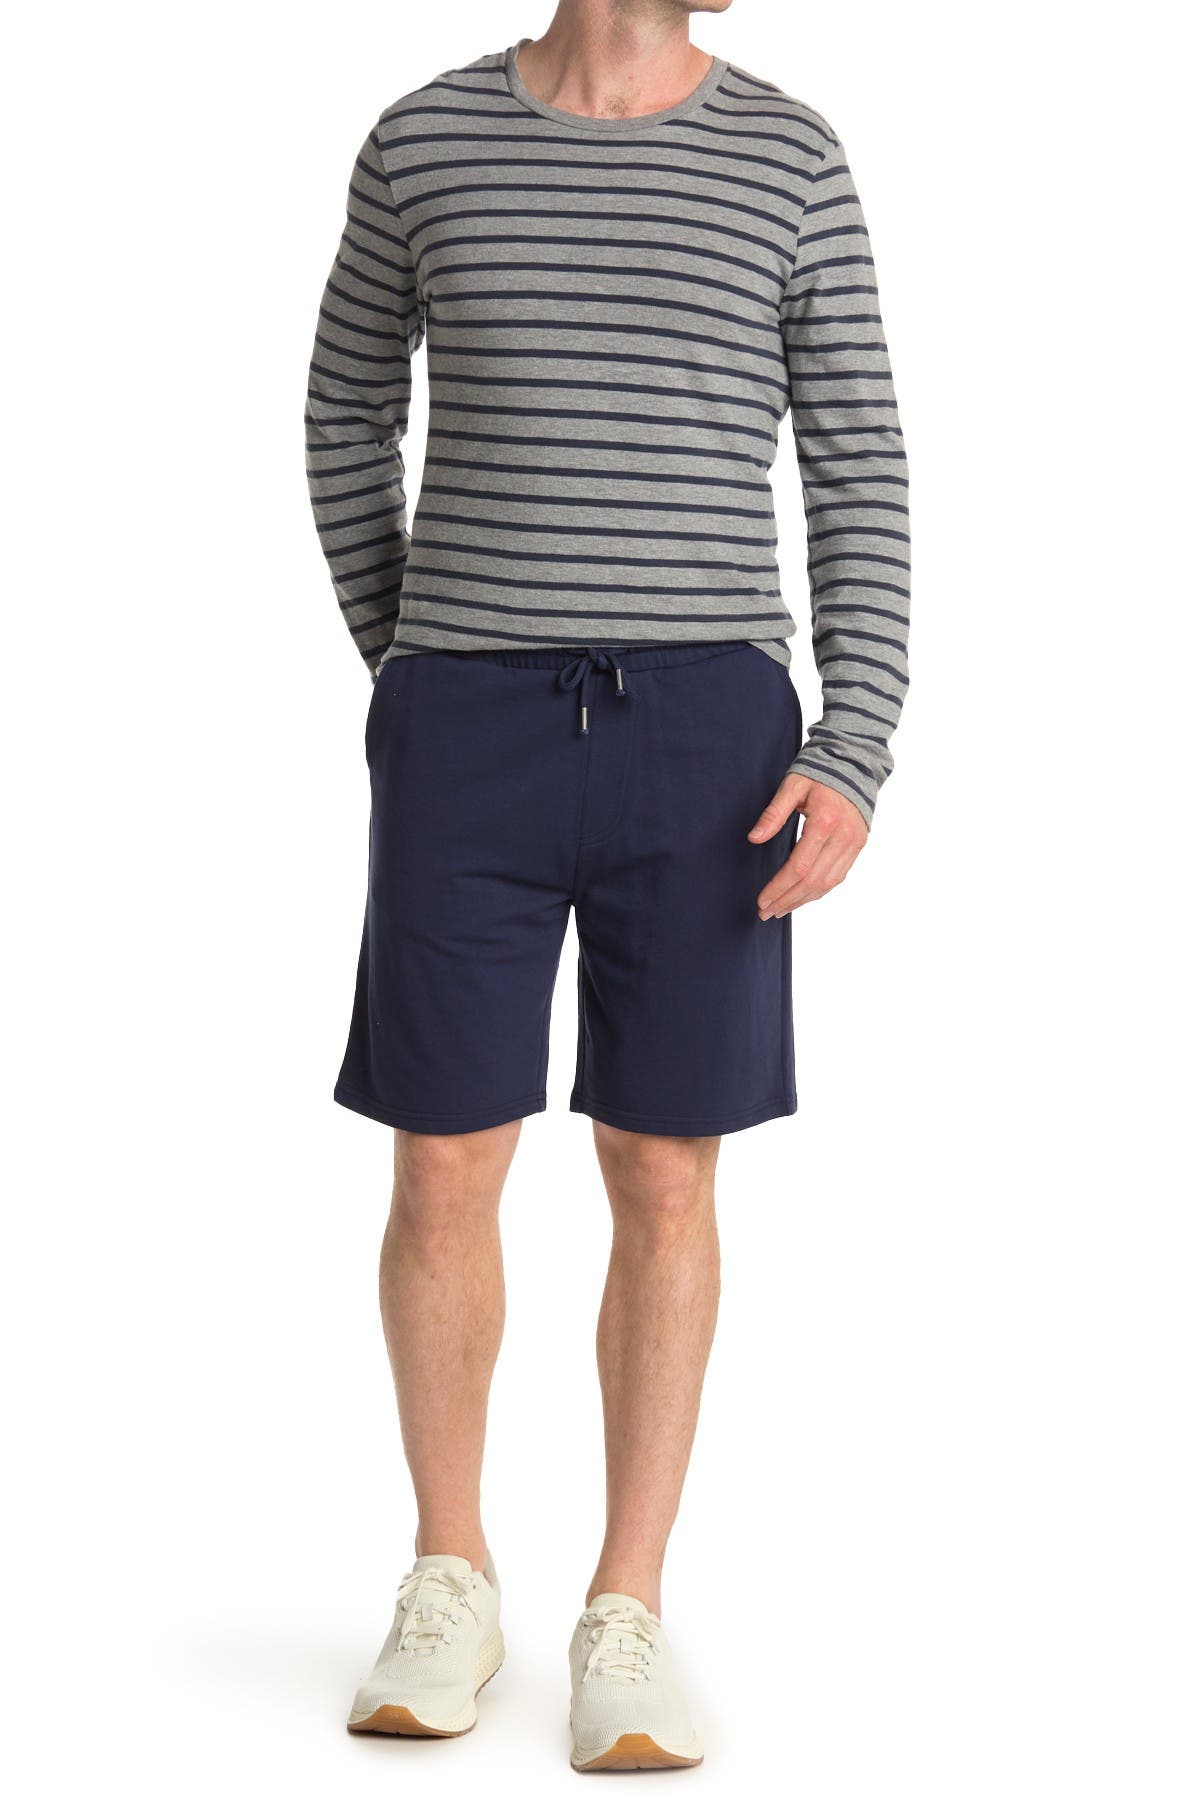 Image of Slate & Stone Drawstring Lounge Shorts